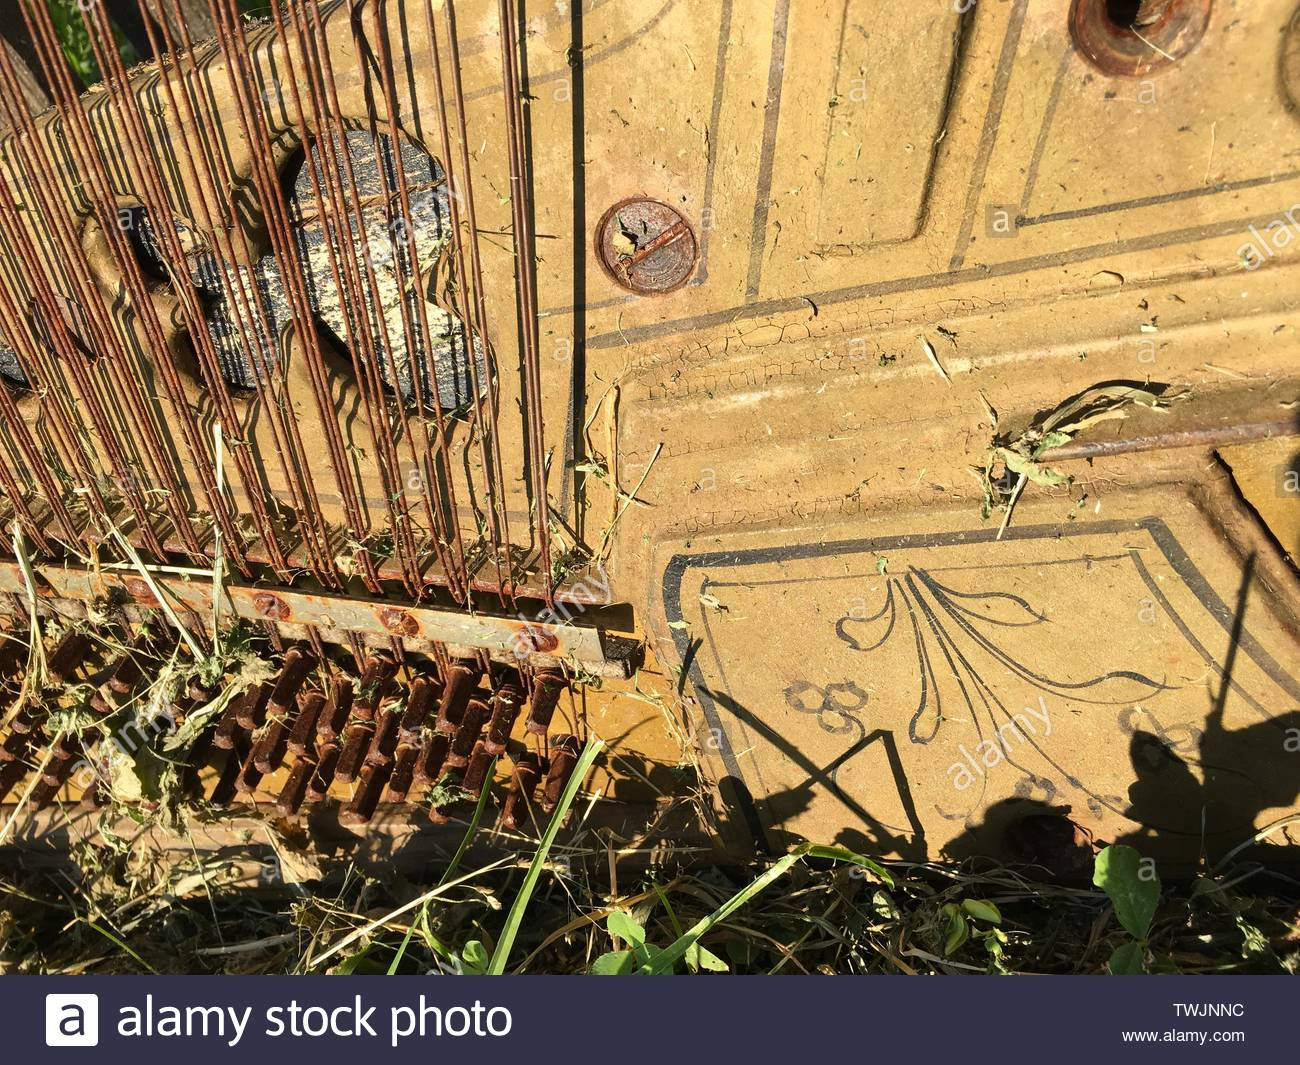 vintage musical instrument, internal parts, strings and pattern - Stock Image